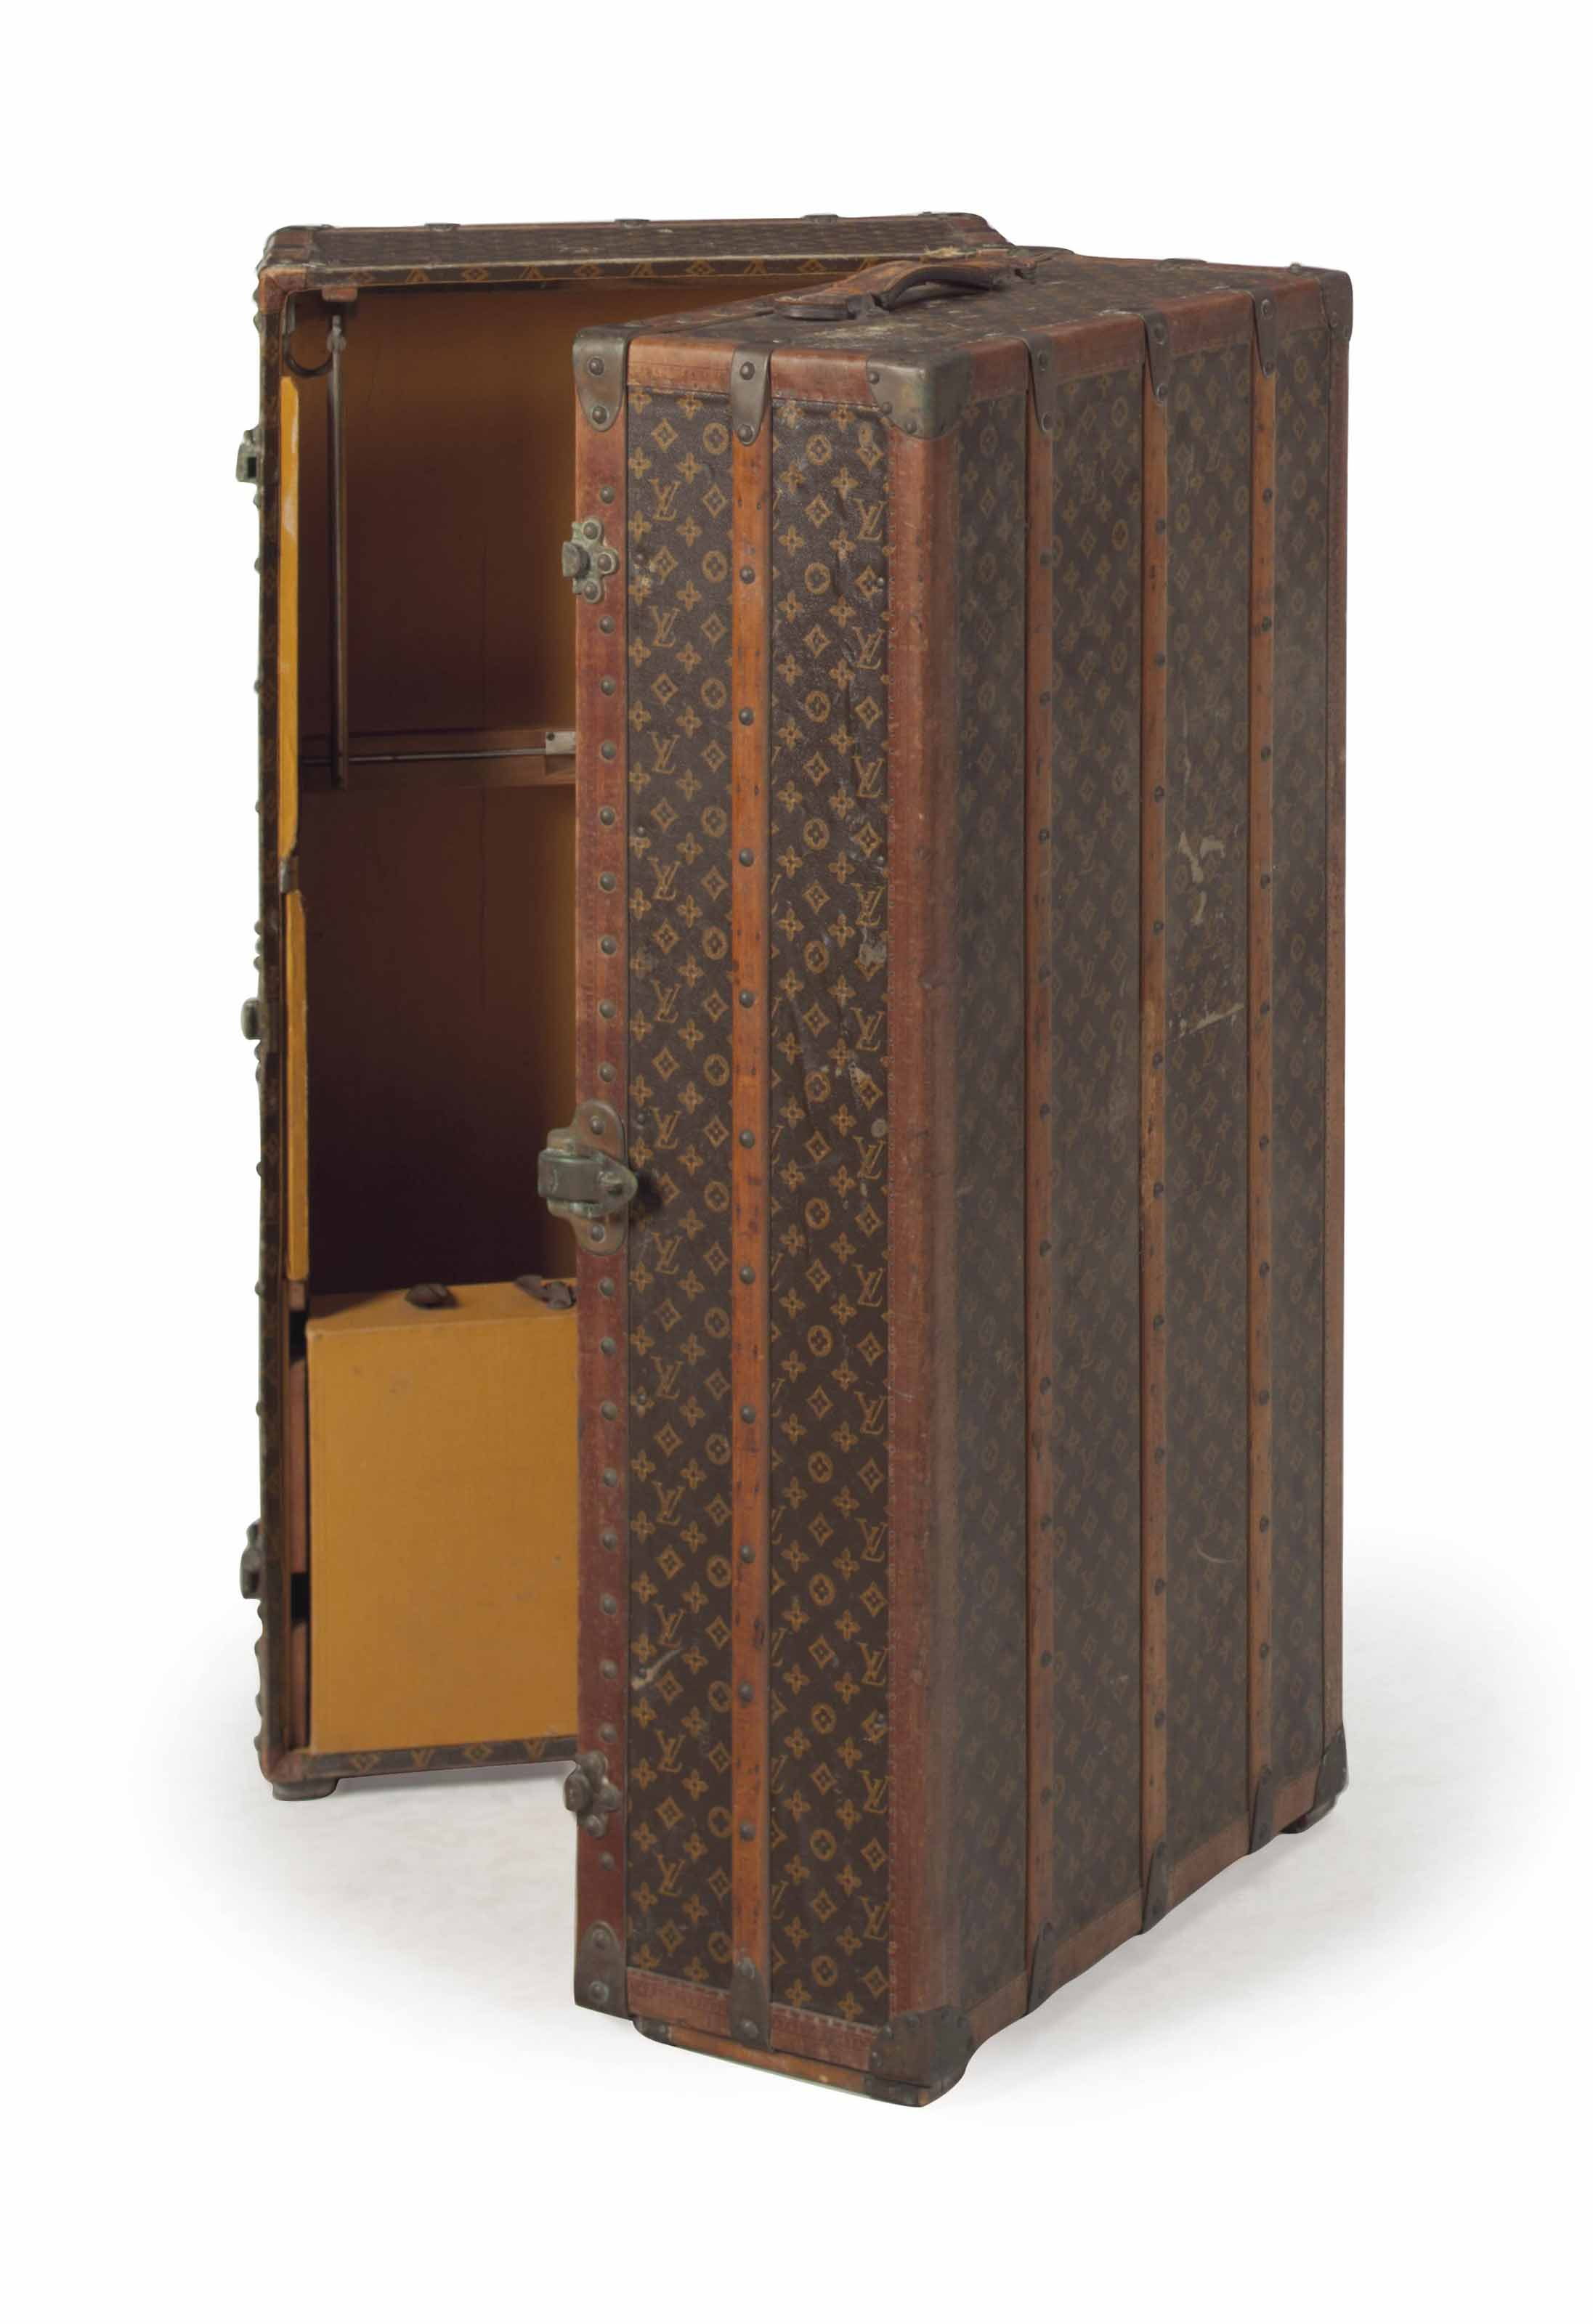 A LOUIS VUITTON WARDROBE TRUNK